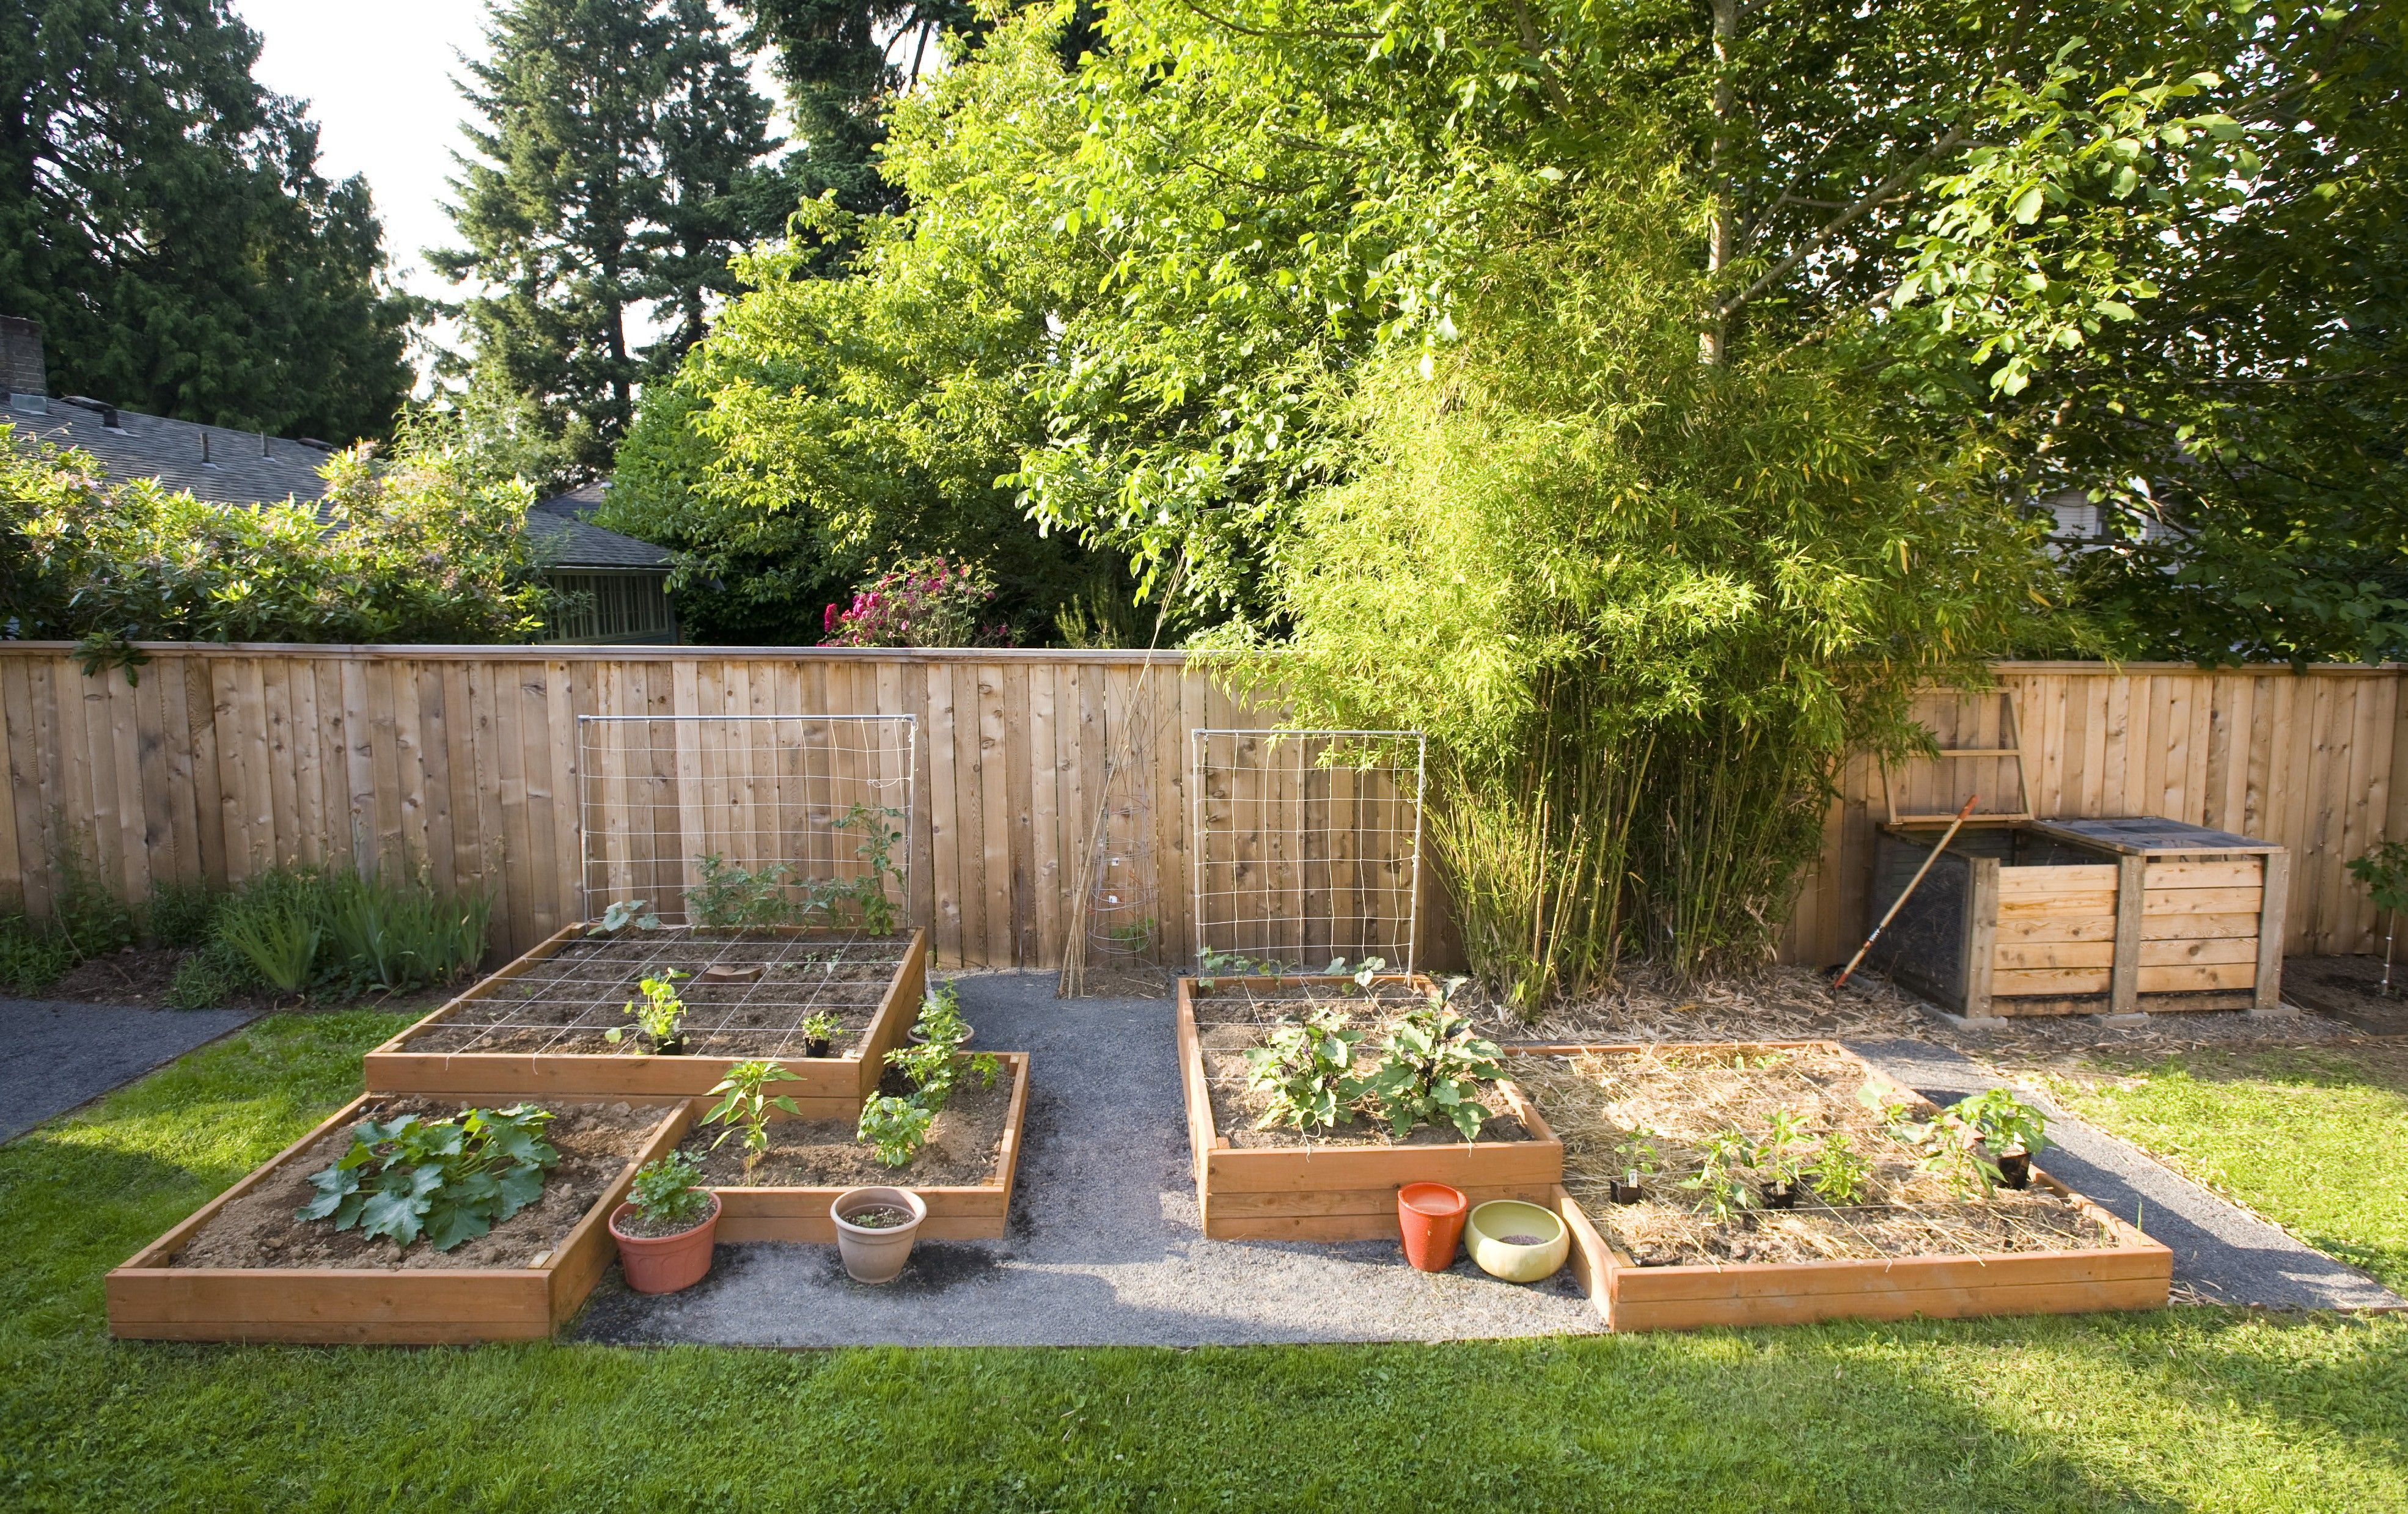 Garden And Patio, Small Square Foot Backyard Vegetable Garden Ideas With  Wood Raised Bed And Wire Trellis Wooden Fence And Bamboo Plants Plus  Gravels And ...